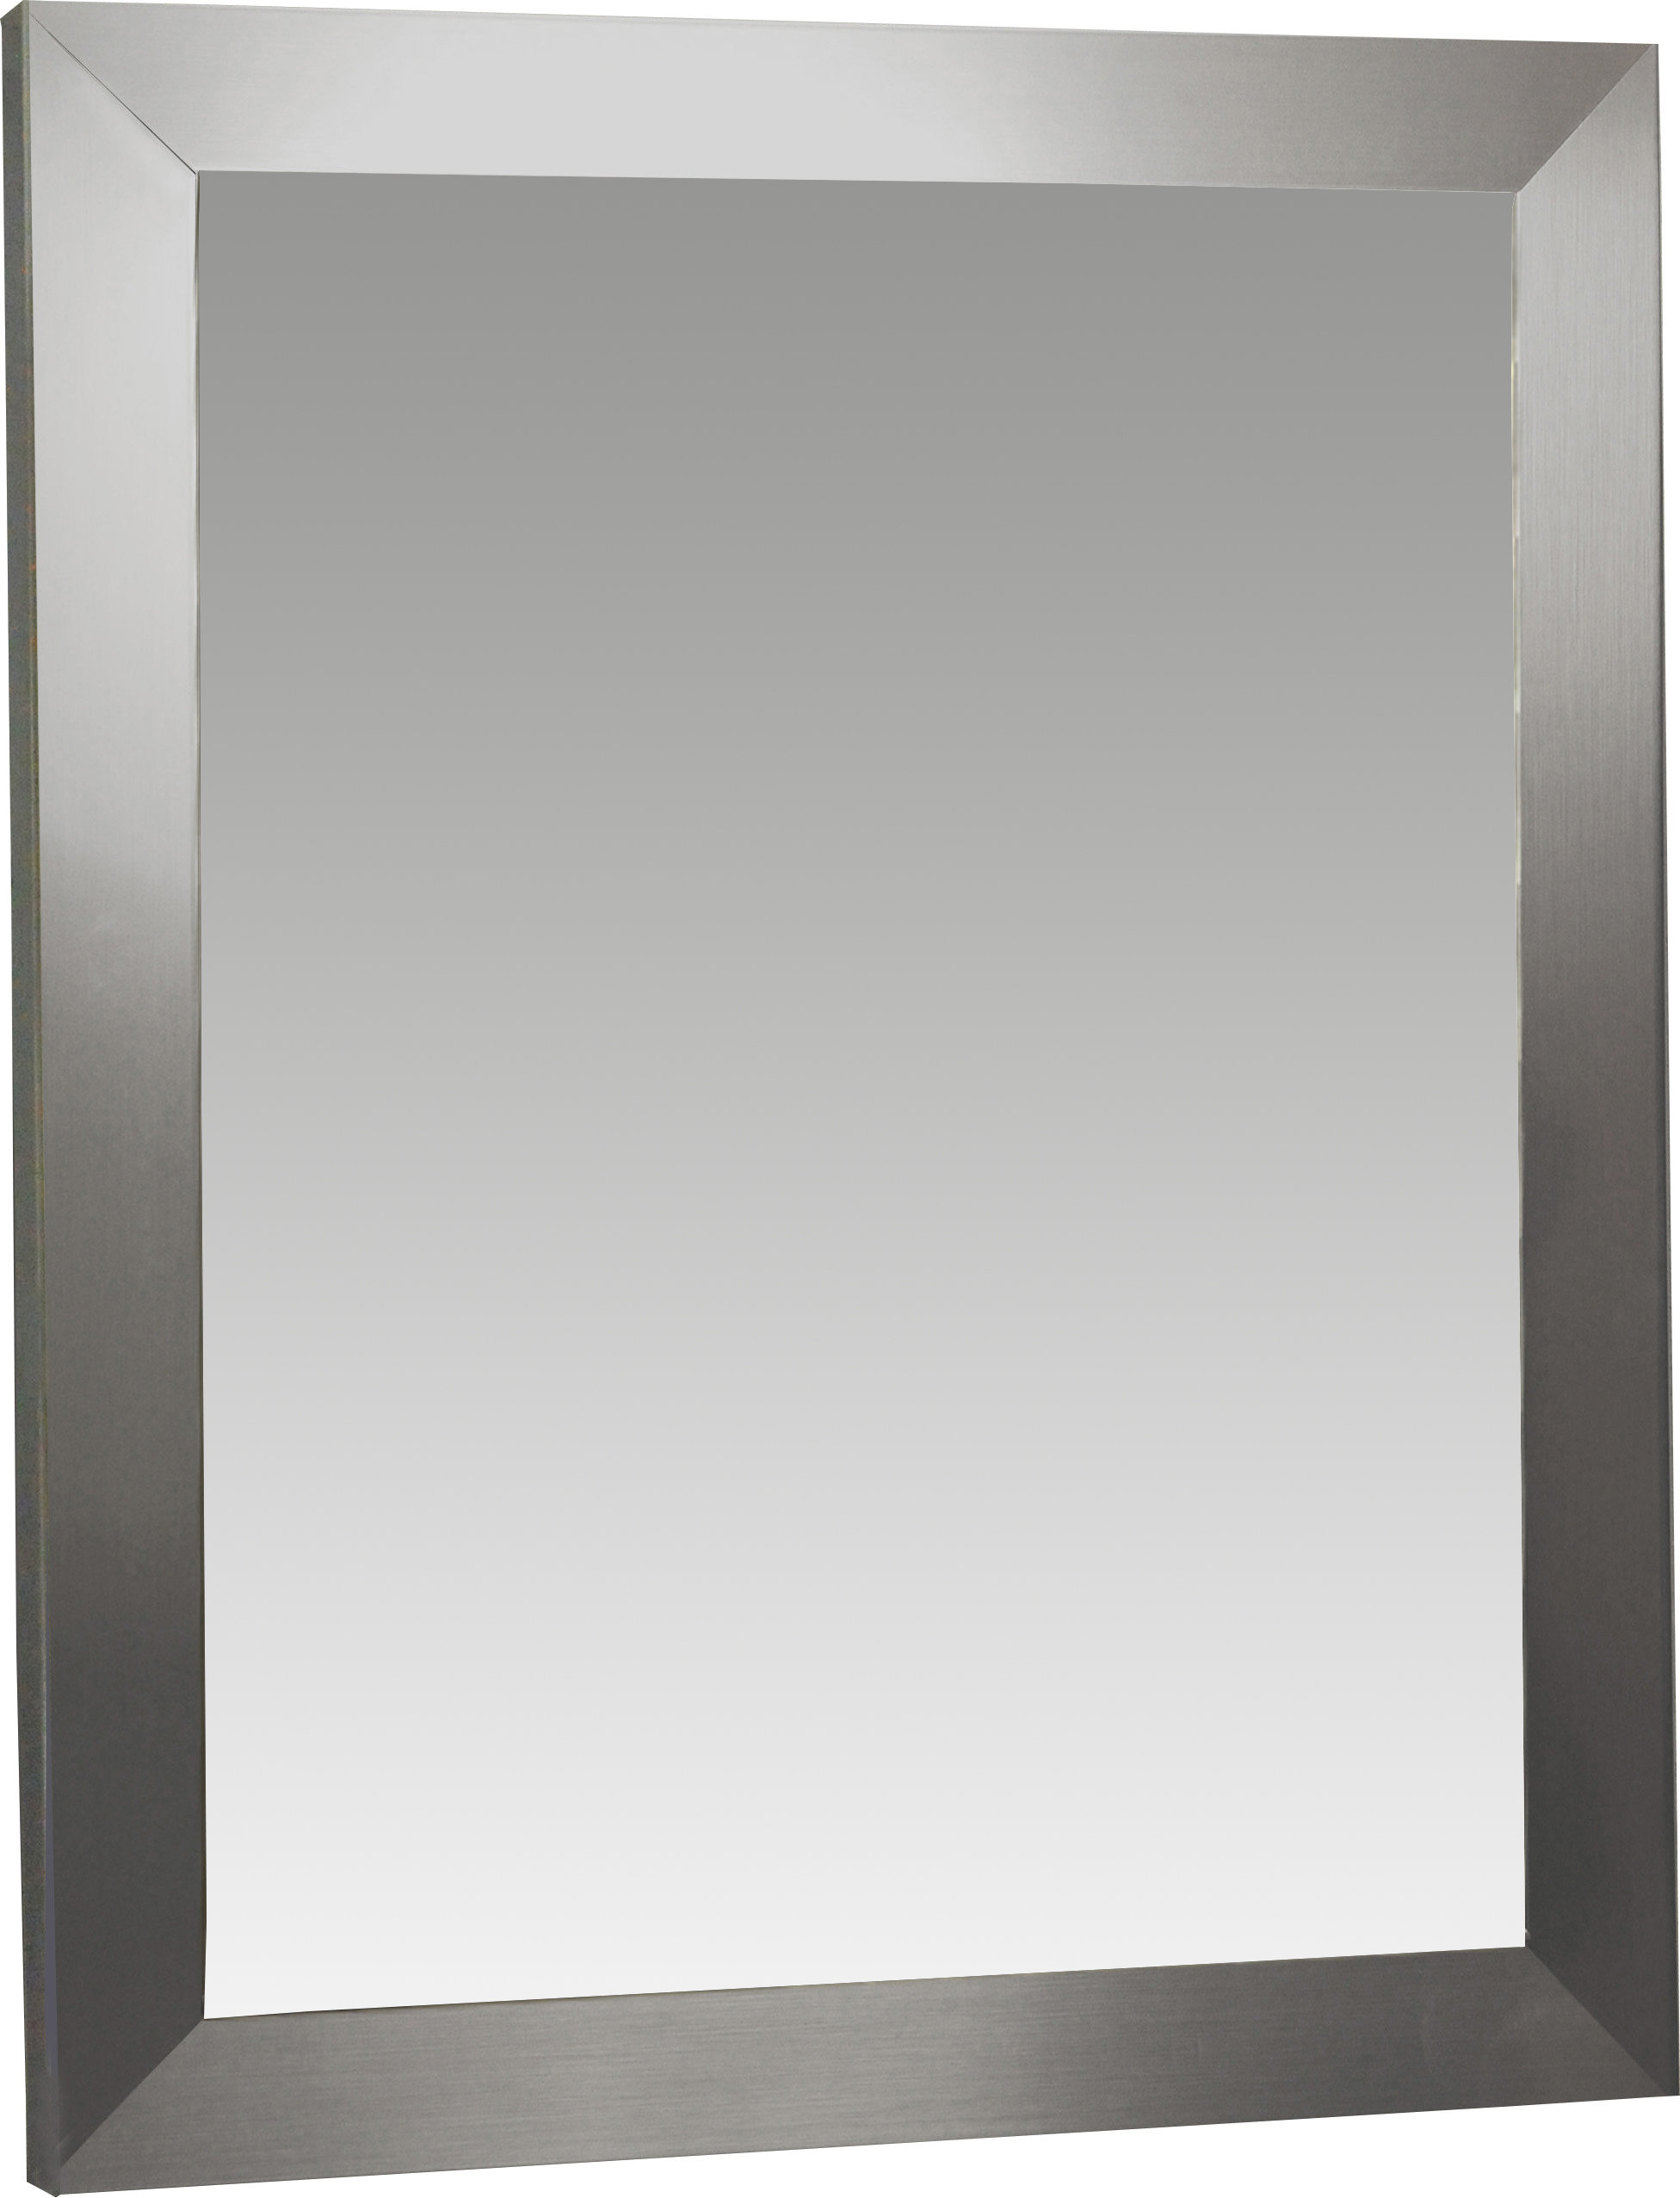 Kurt Modern & Contemporary Wall Mirror & Reviews | Allmodern Intended For Industrial Modern & Contemporary Wall Mirrors (View 4 of 20)